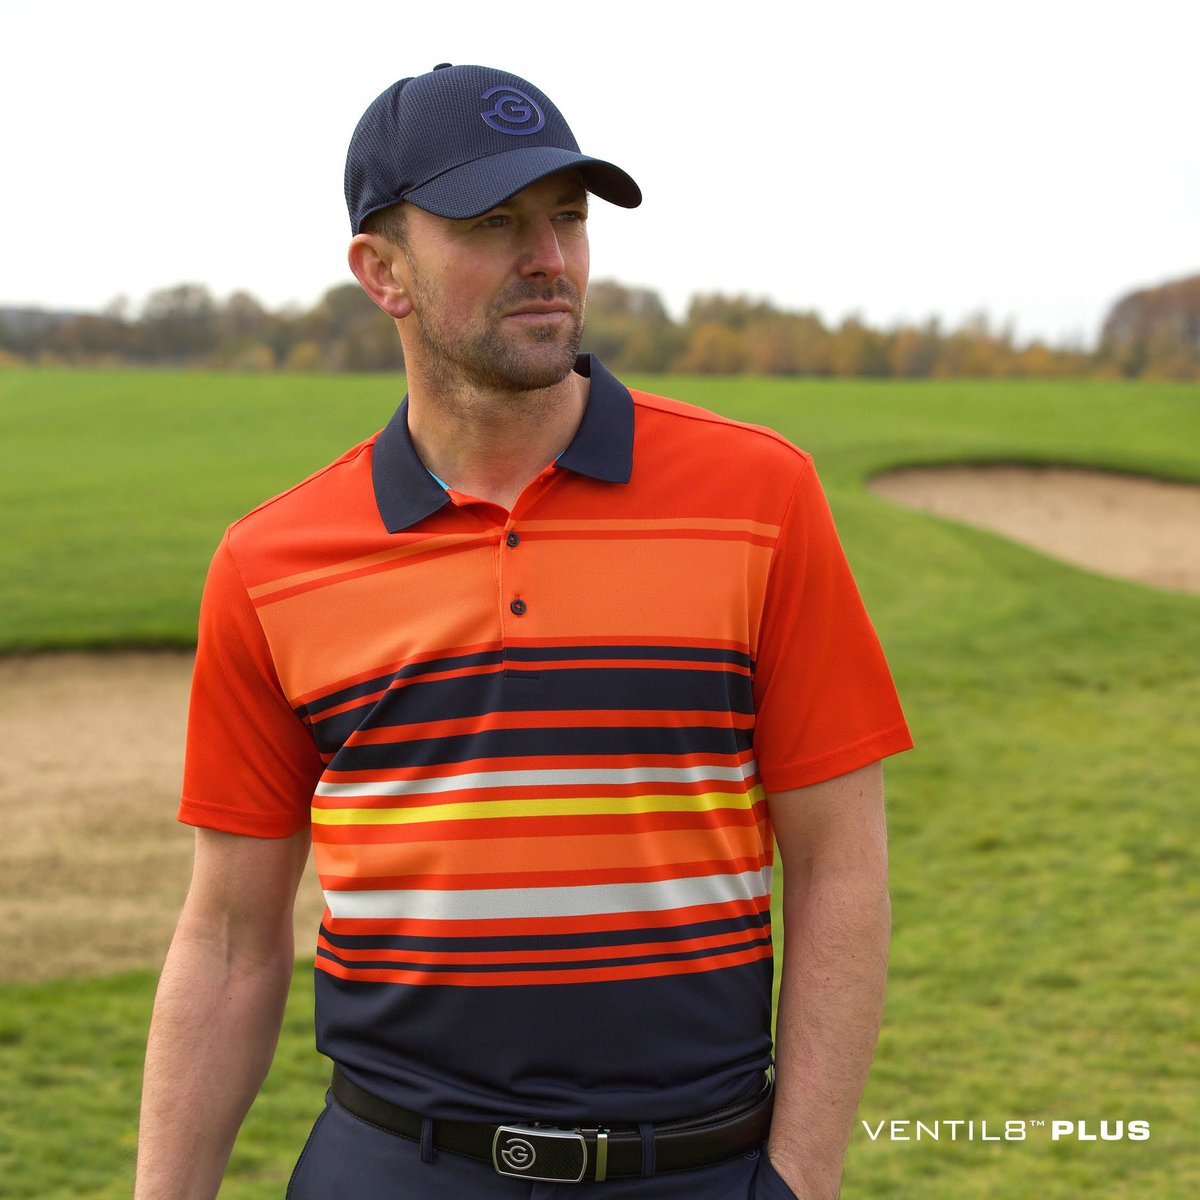 Meet Miguel 🔥 ☀️ UPF 20+ ✌️ Twice as breathable as regular polyester ⏱ Quick drying 6️⃣ Colour options To find out more about our Ventil8 range please visit your local stockist or galvingreen.com.